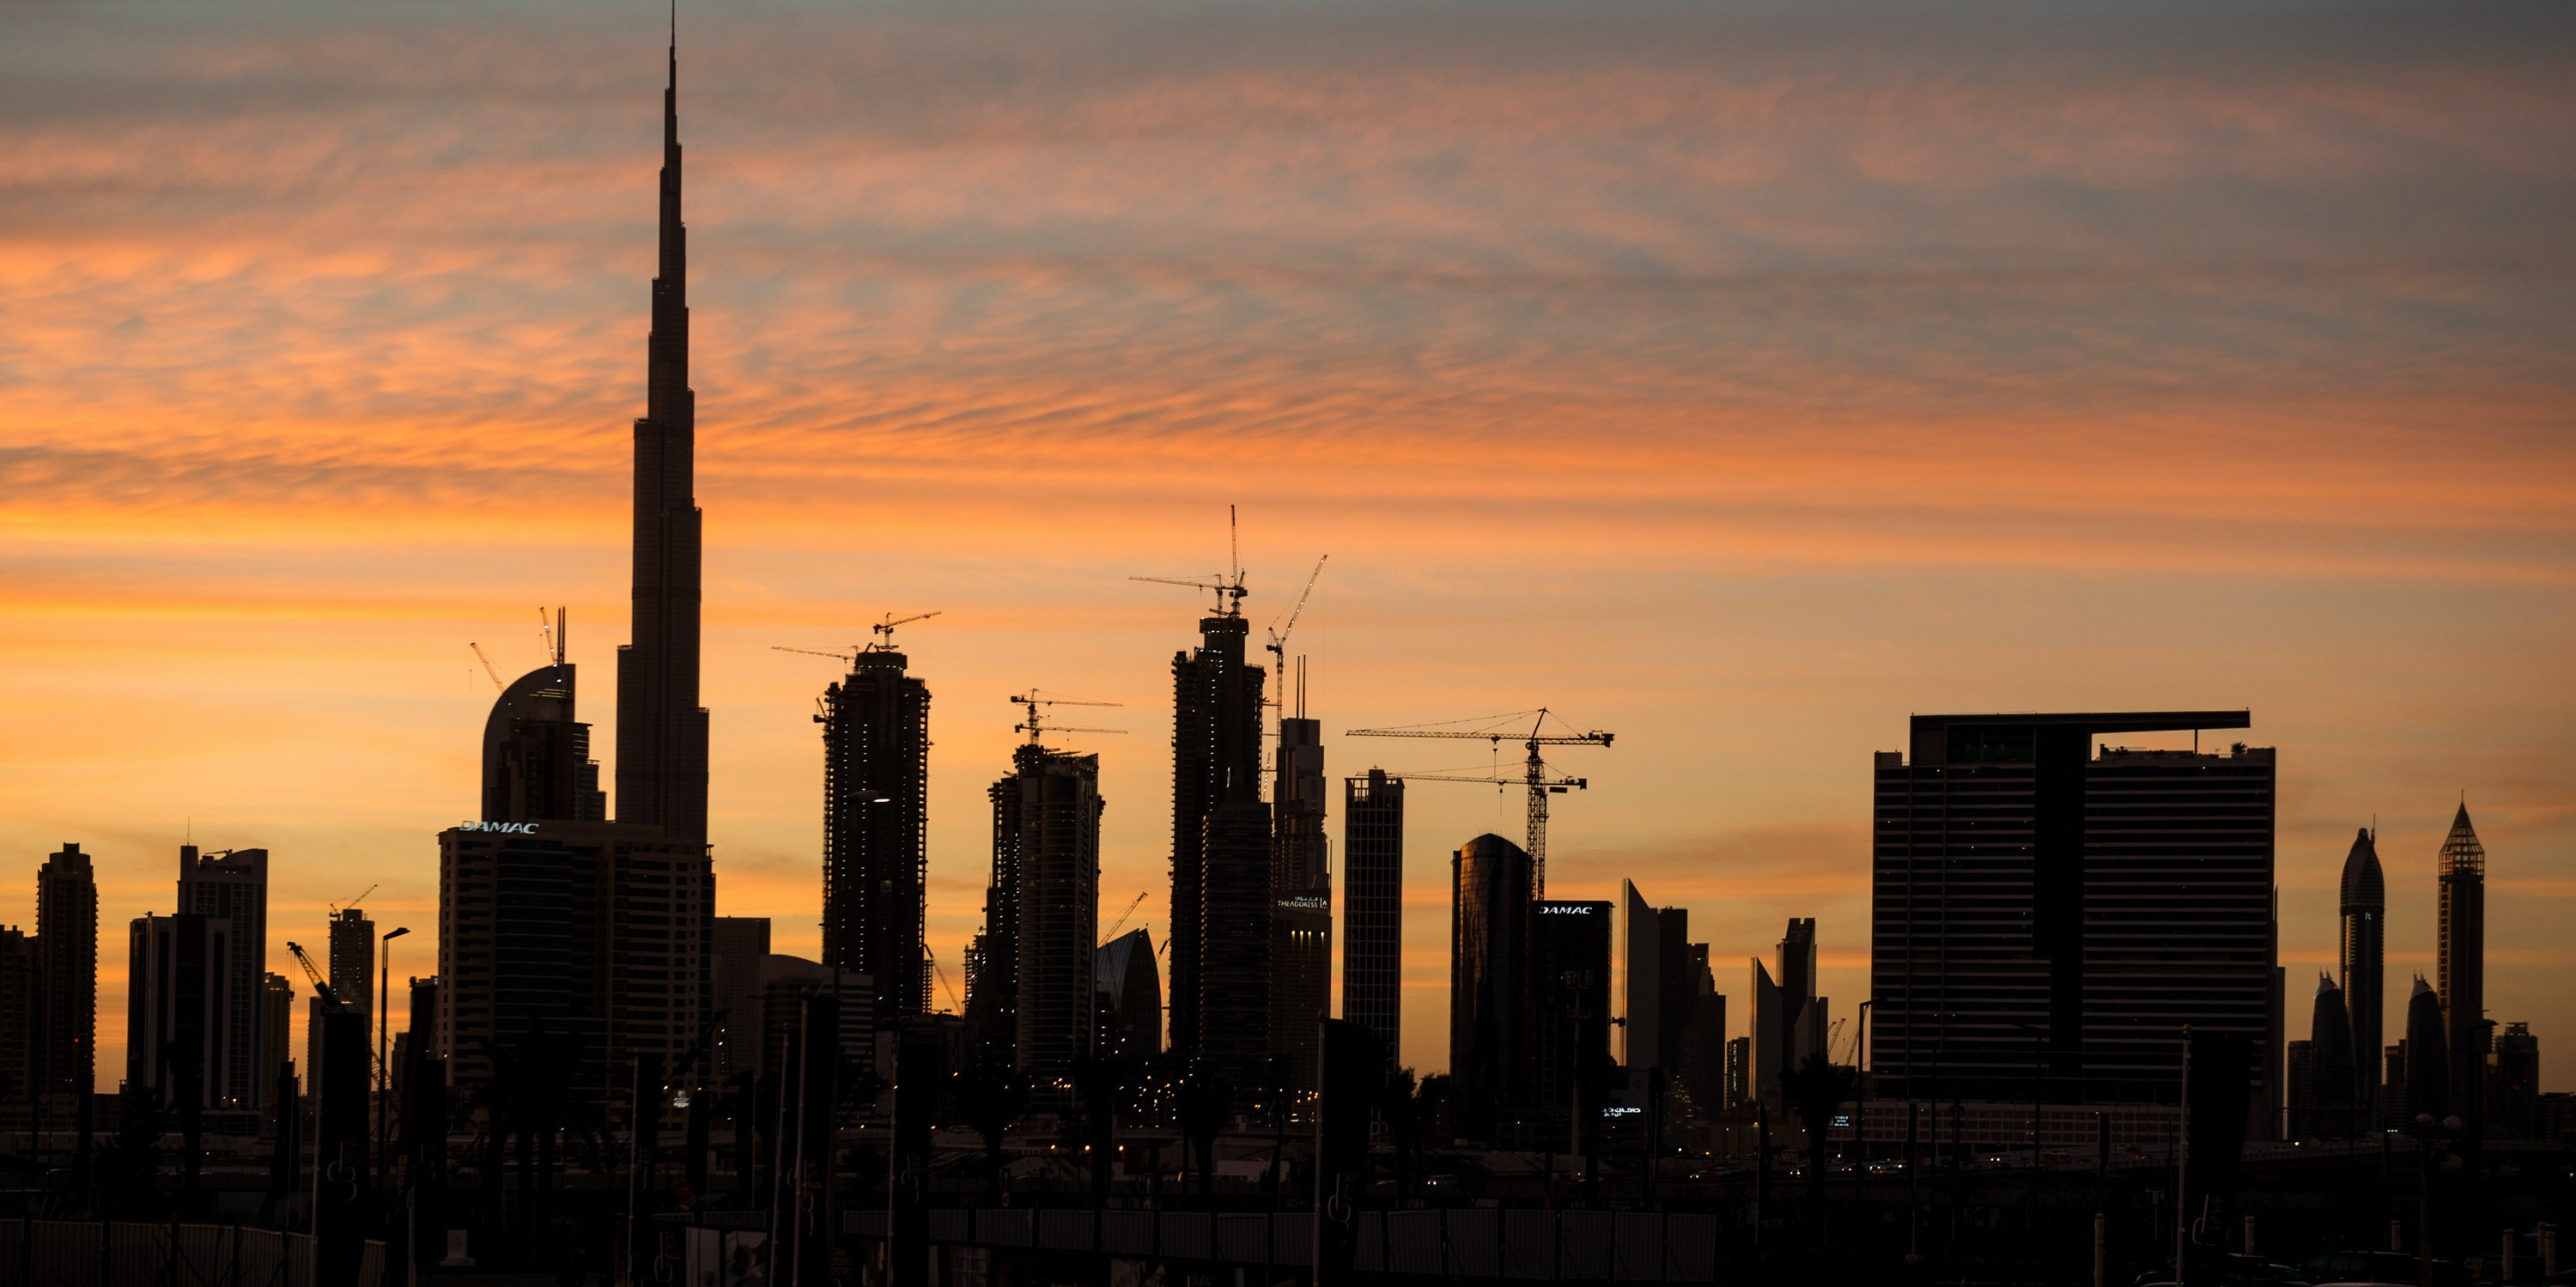 DUBAI, UNITED ARAB EMIRATES - APRIL 02:  A general view of the Dubai skyline on day 3 of Fashion Forward Fall/Winter 2016 held at the Dubai Design District on April 2, 2016 in Dubai, United Arab Emirates.  (Photo by Cedric Ribeiro/Getty Images)